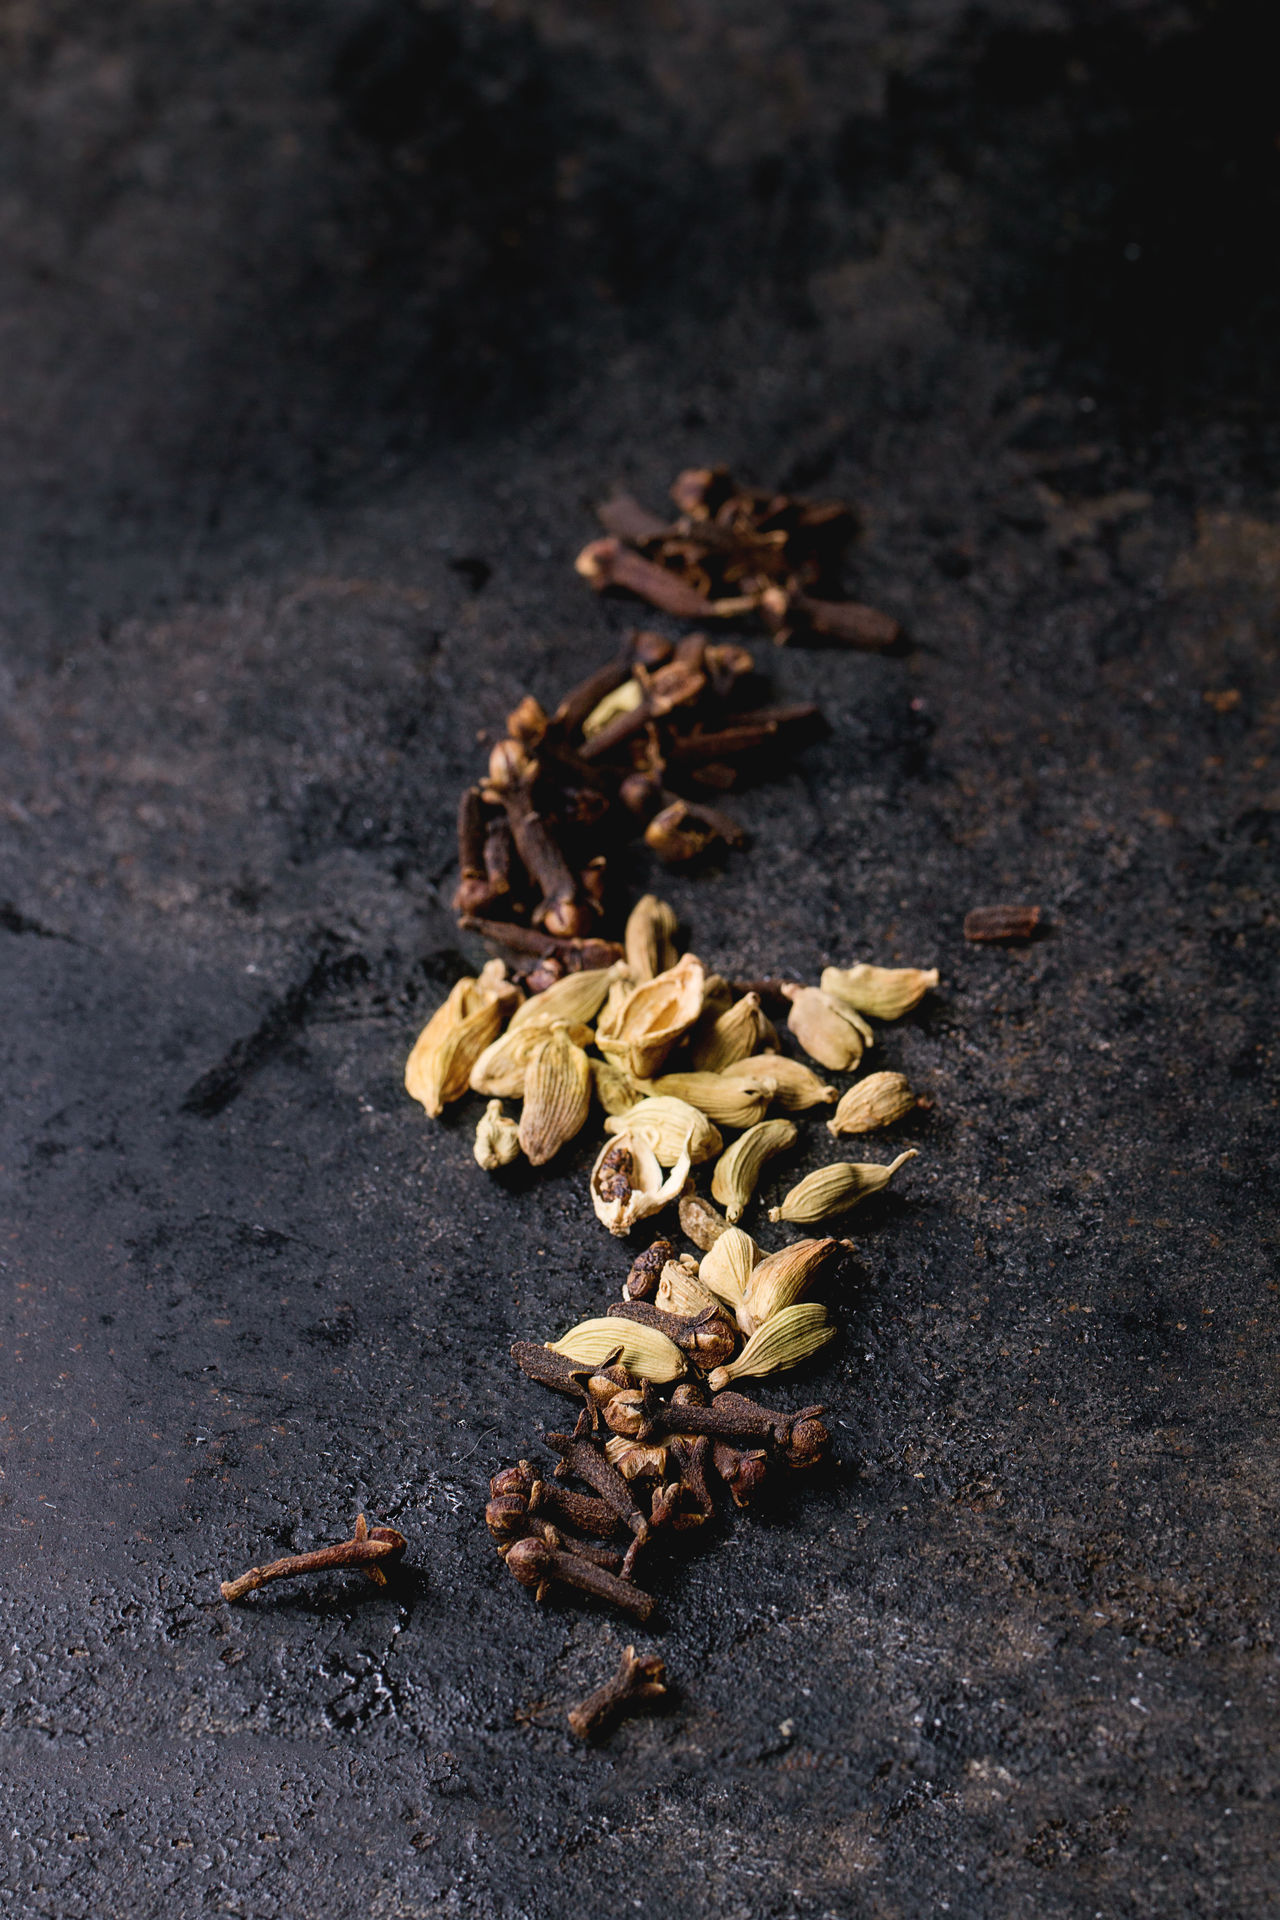 Cardamom seeds and cloves over black background Aromatic Black Background Cardamom Cloves Cooking Food Food Background Food Photography Healthy Eating High Angle View Indian Spices Ingredient Seasoning Seeds Space For Text Spice Spicy Various